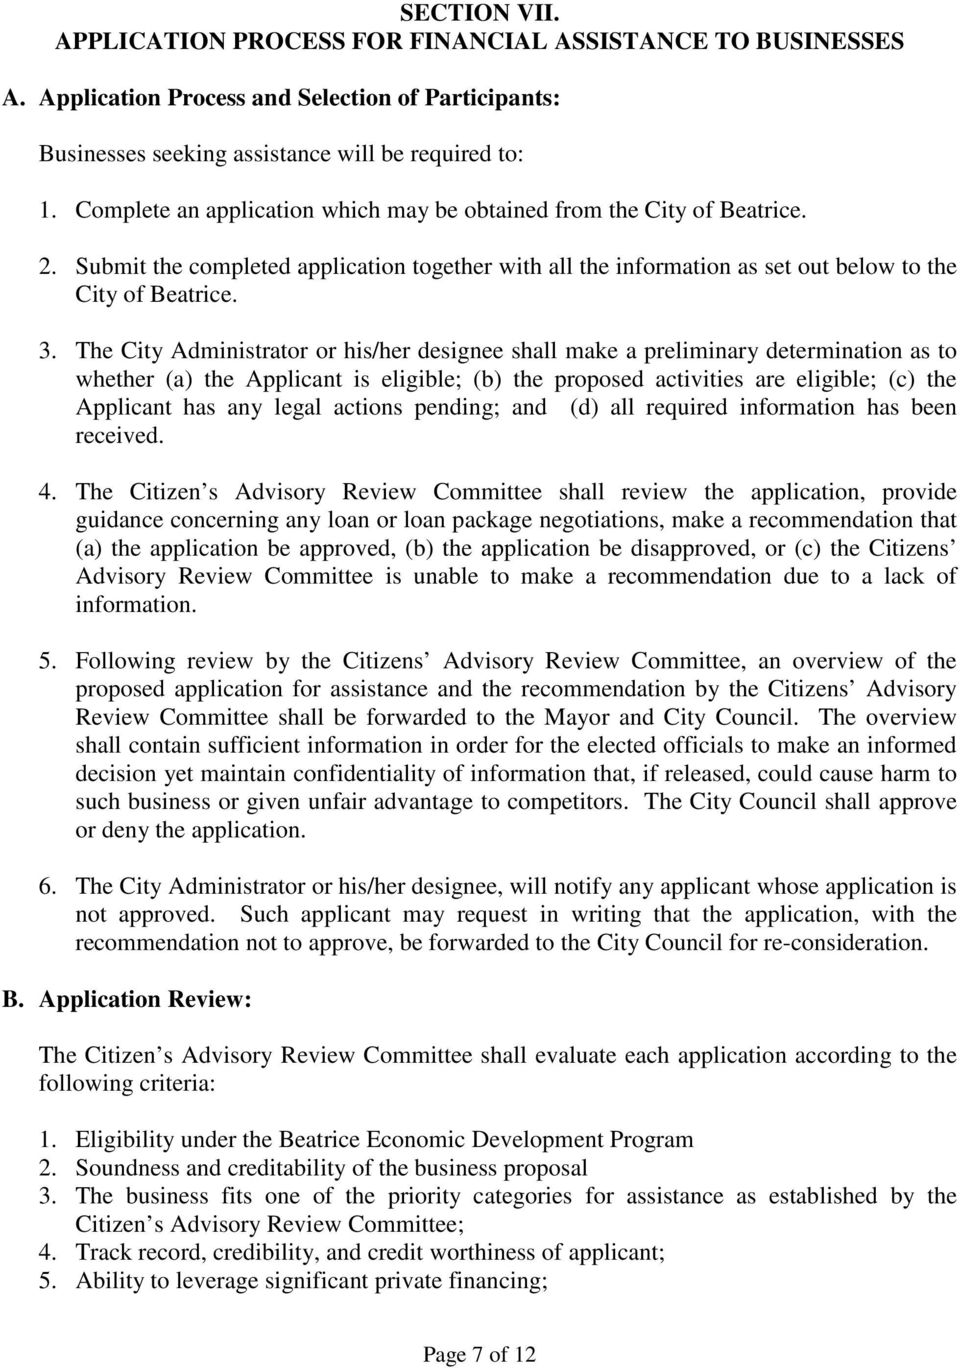 The City Administrator or his/her designee shall make a preliminary determination as to whether (a) the Applicant is eligible; (b) the proposed activities are eligible; (c) the Applicant has any